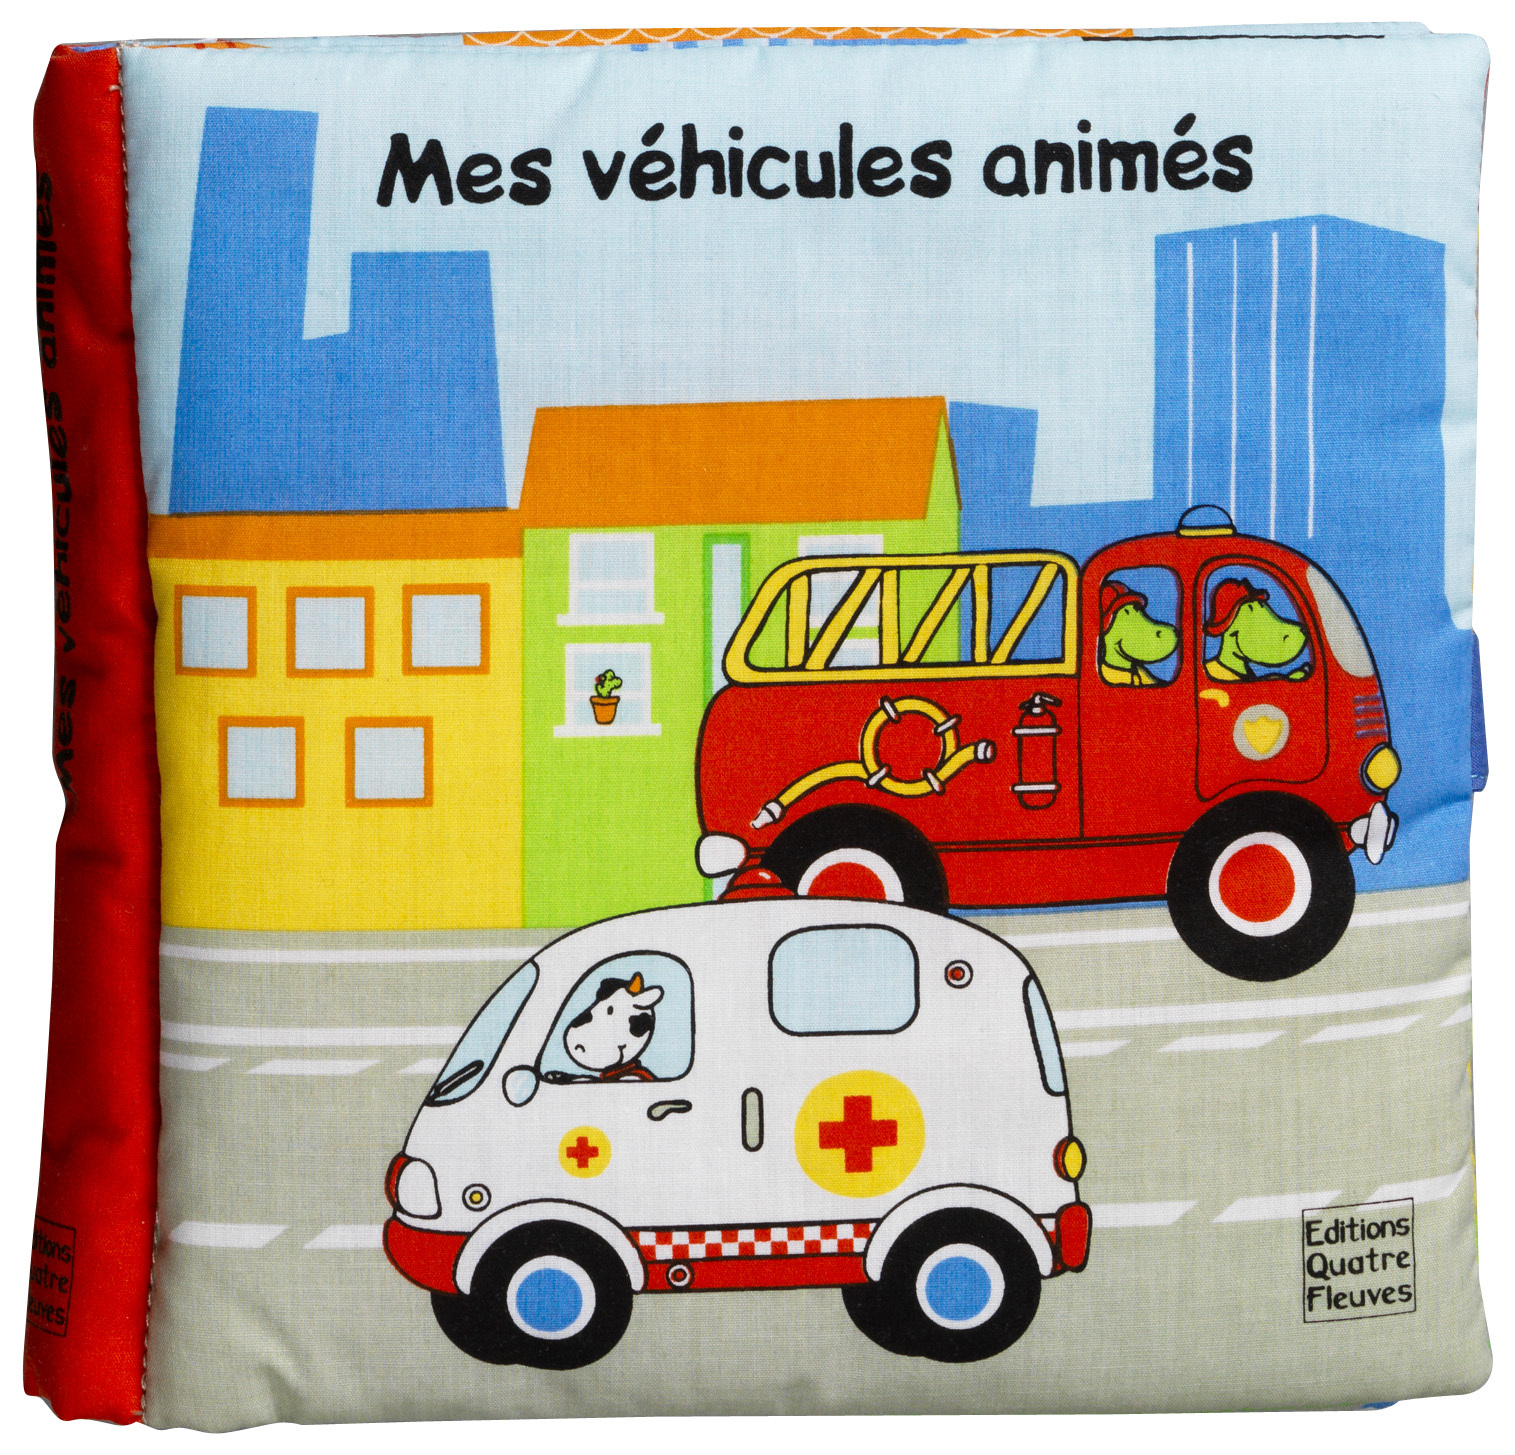 MES VEHICULES ANIMES